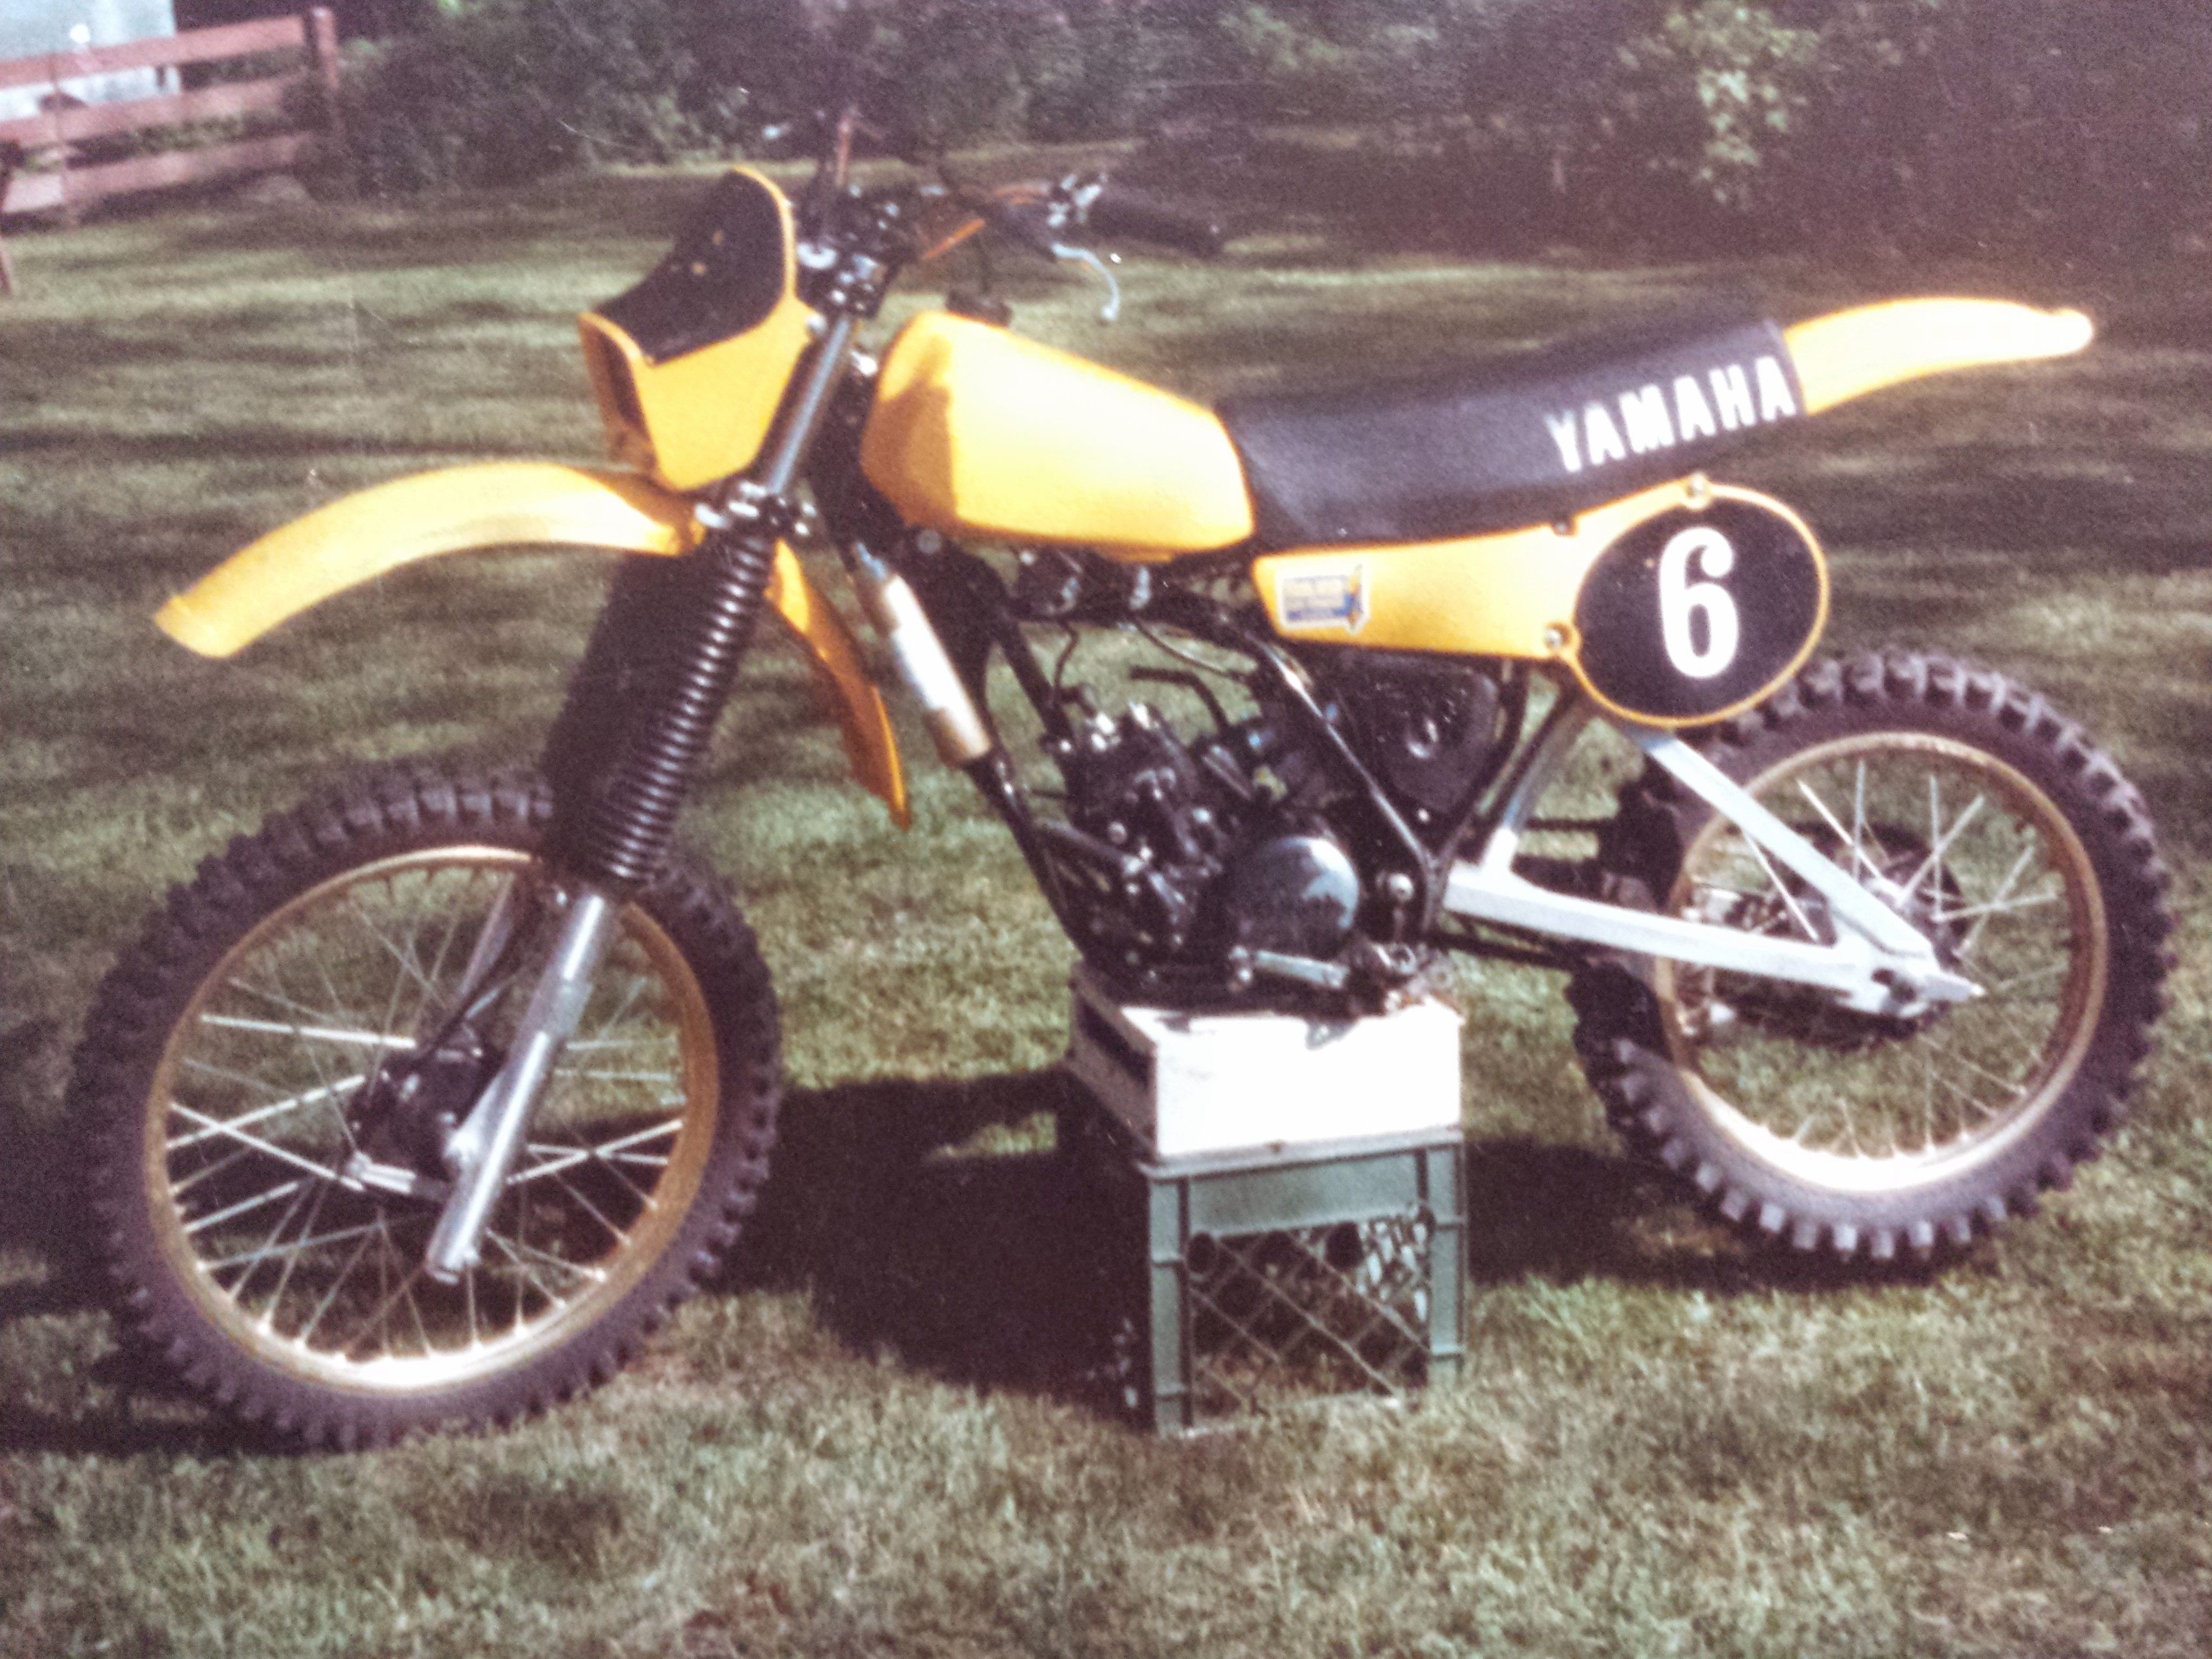 1981 YZ125  First race bike bought new! Would love to find